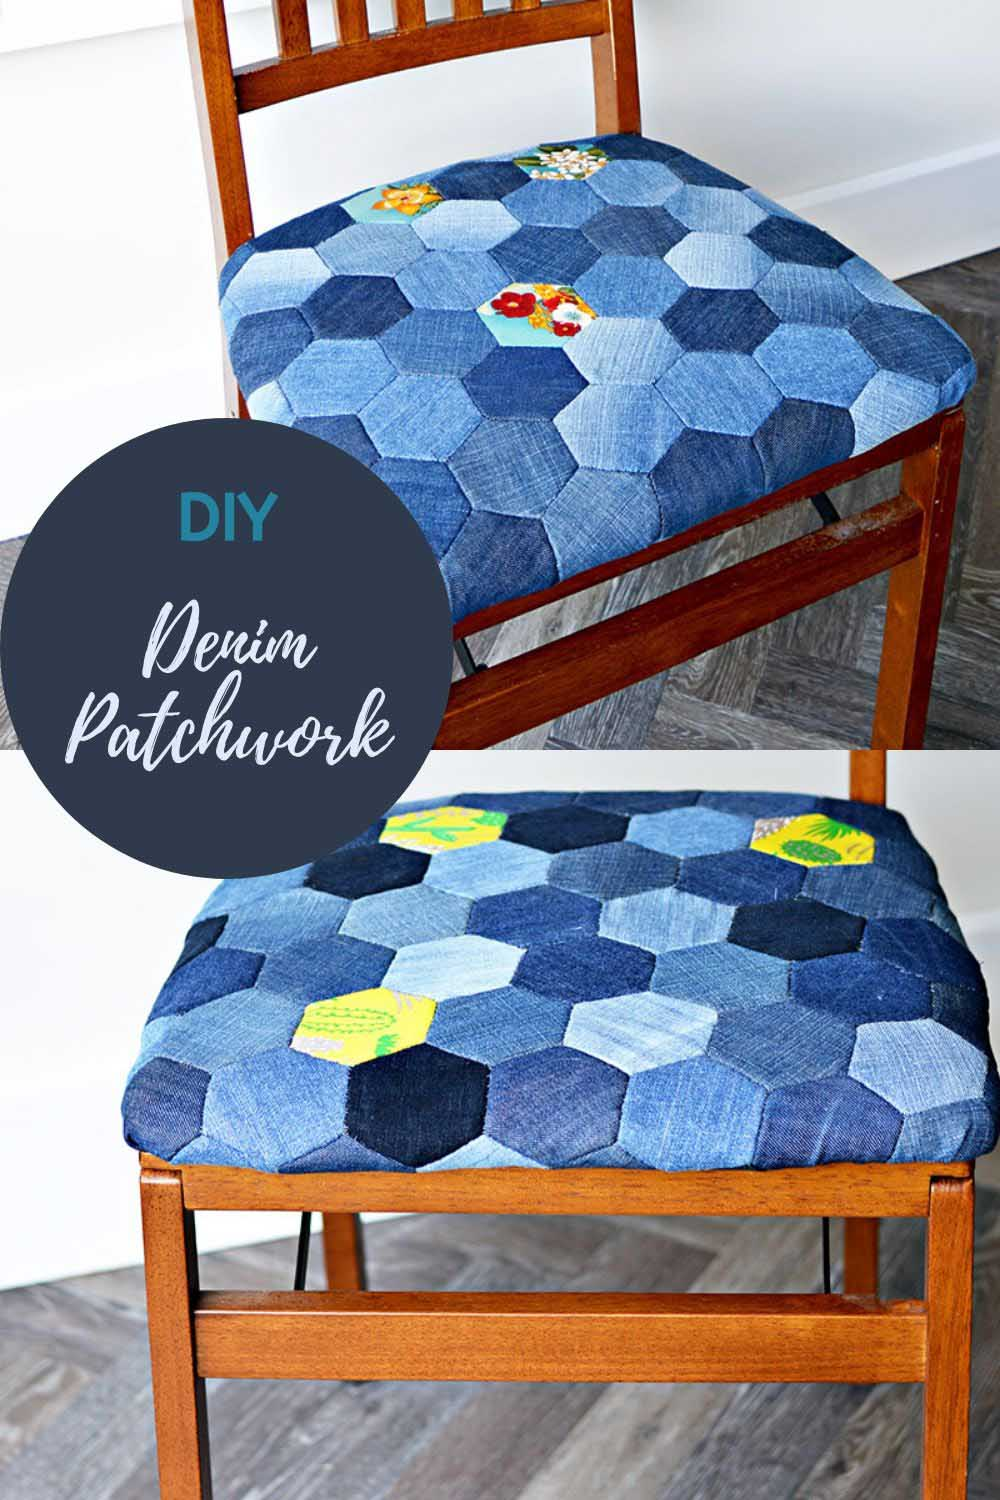 DIY denim patchwork chairs